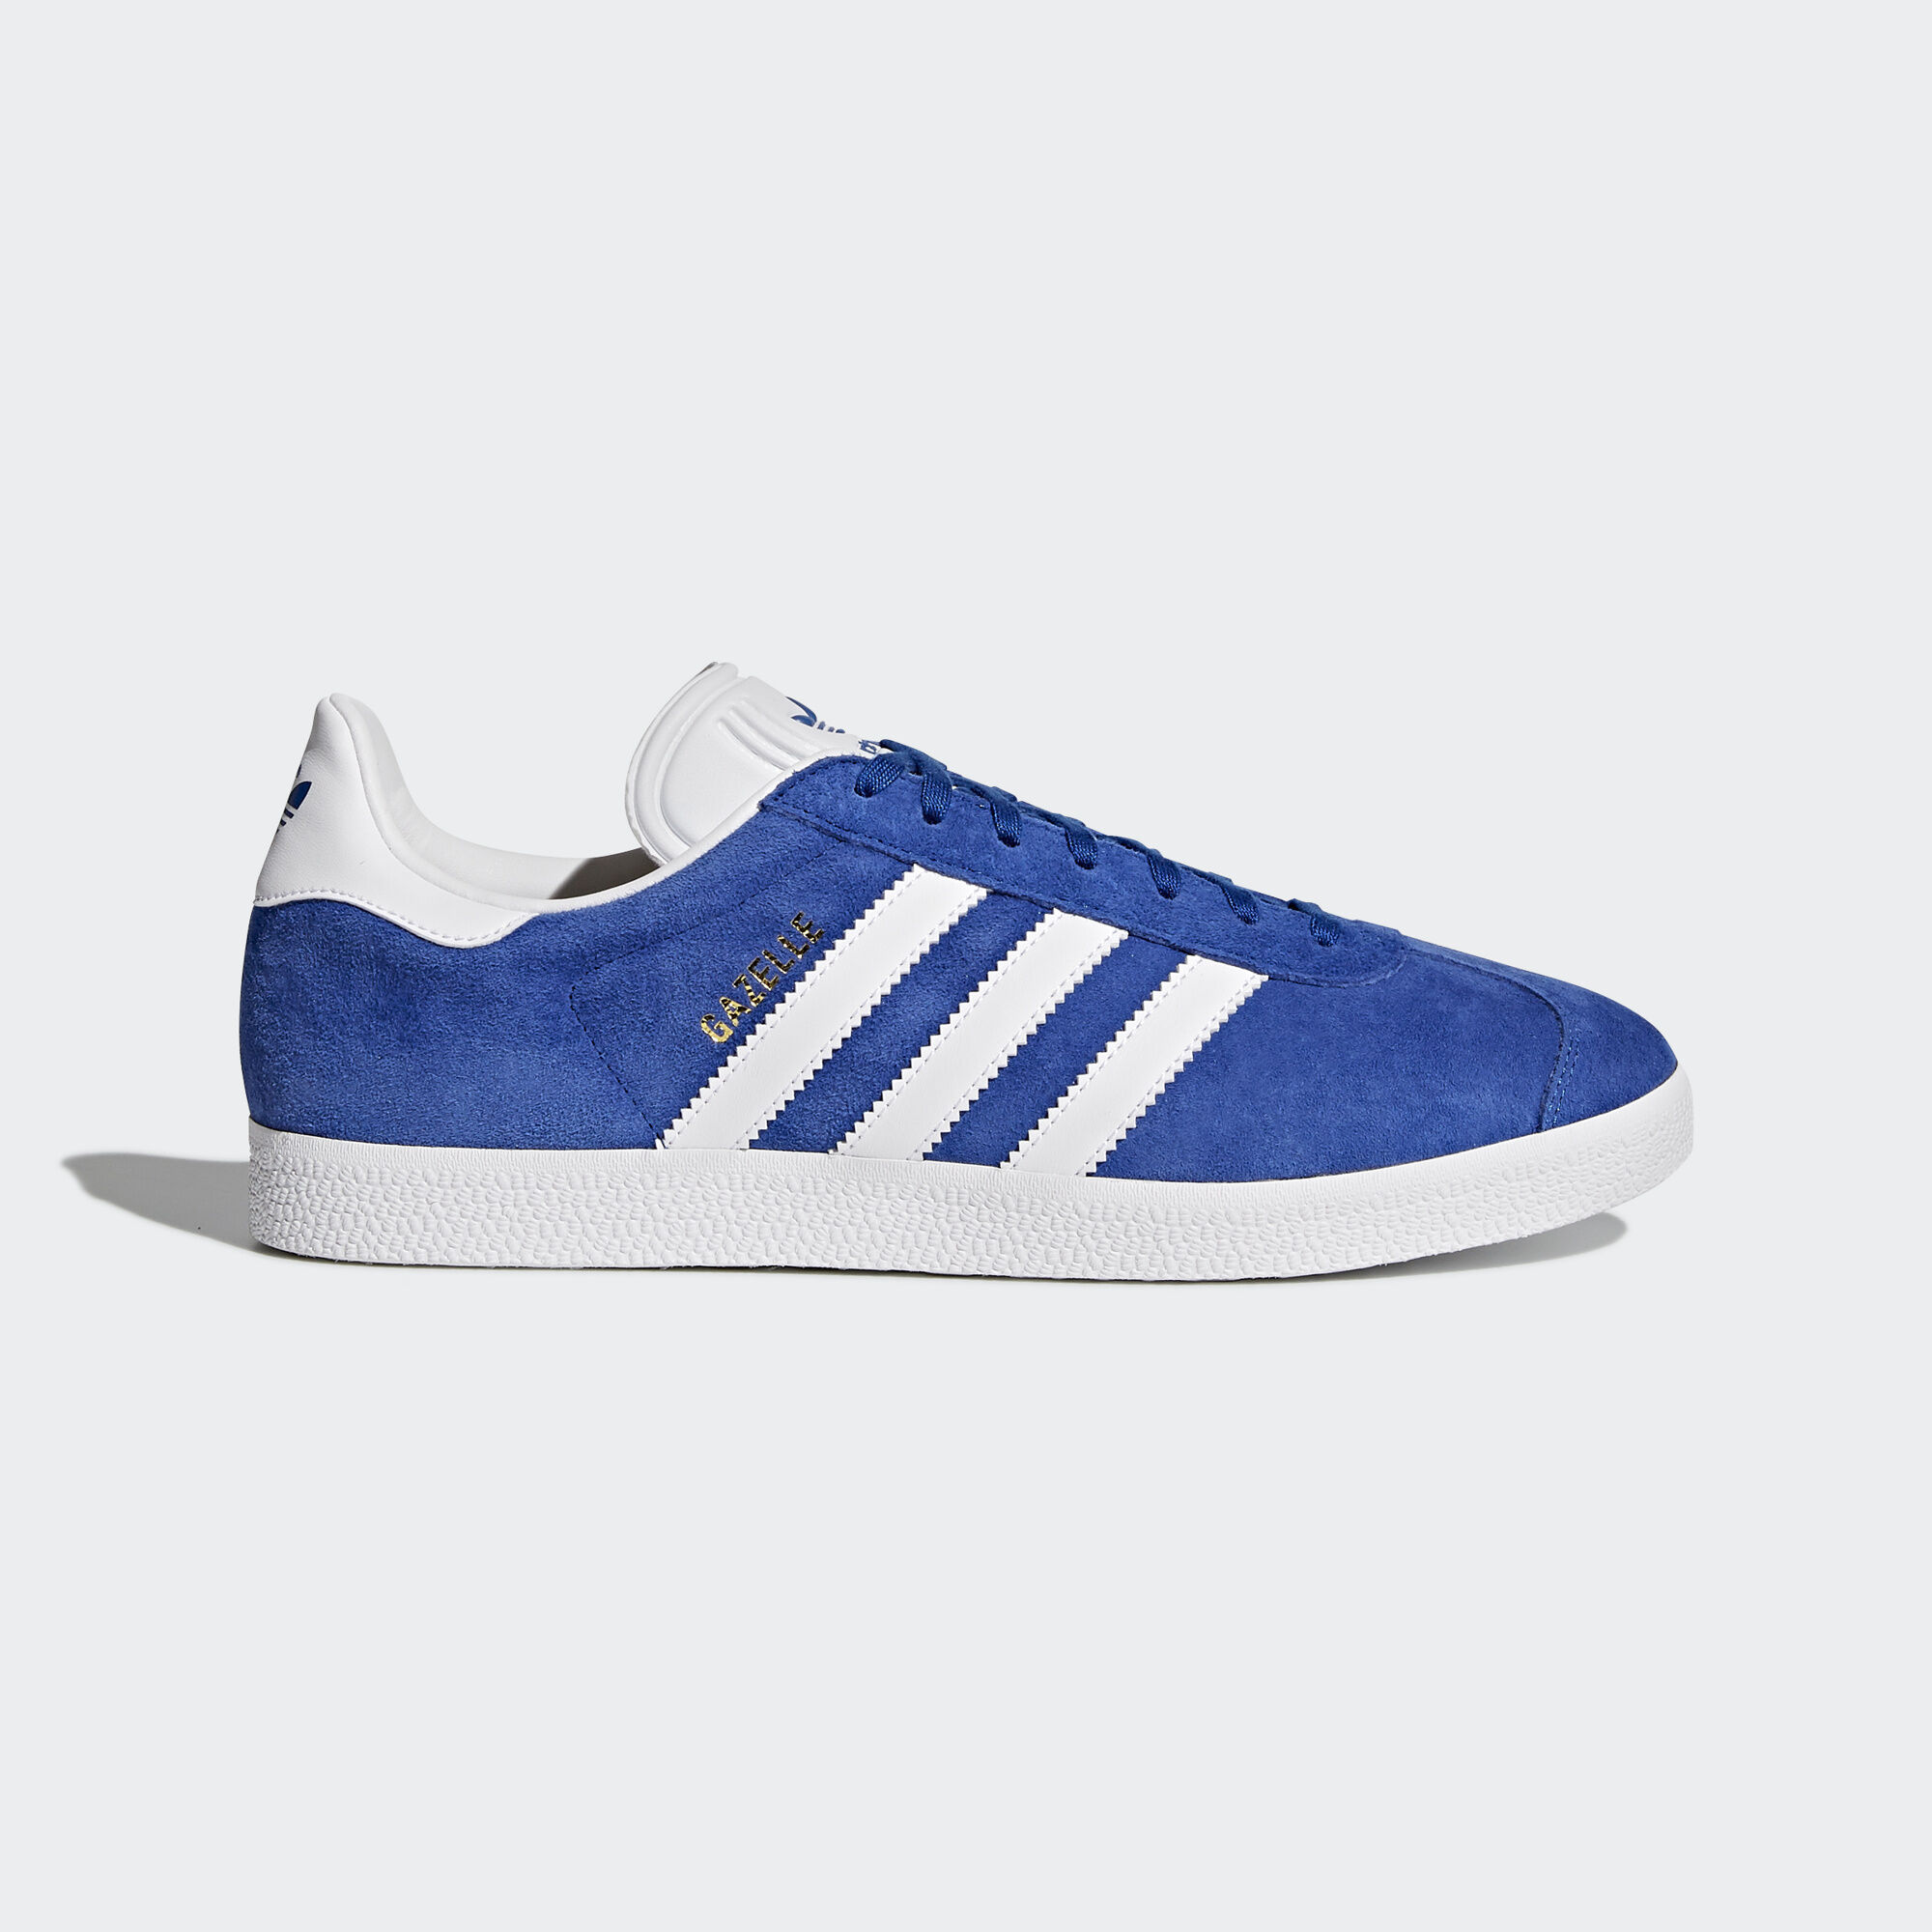 adidas chaussure homme 2013